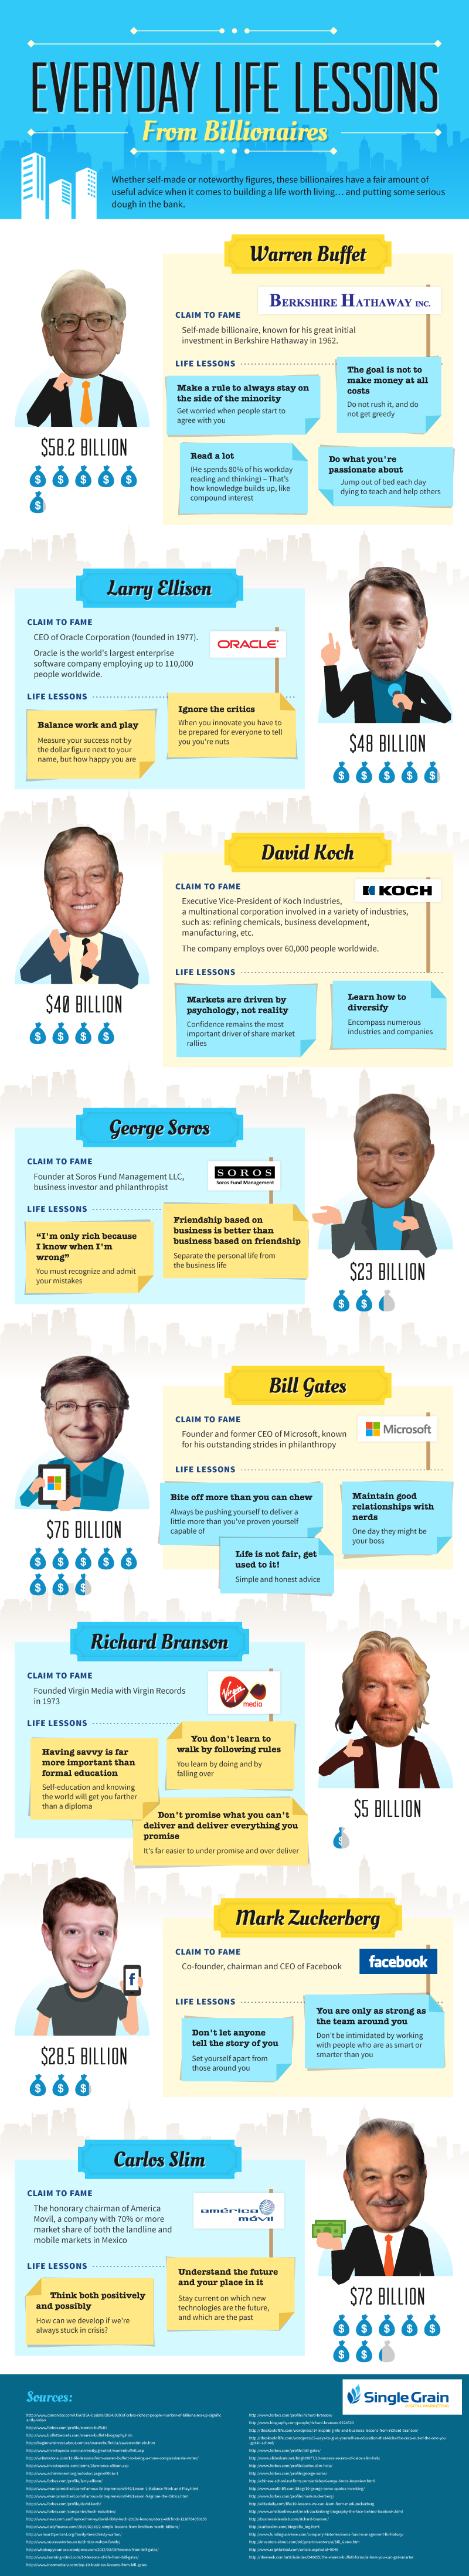 everyday-life-lessons-from-billionaires-infographic